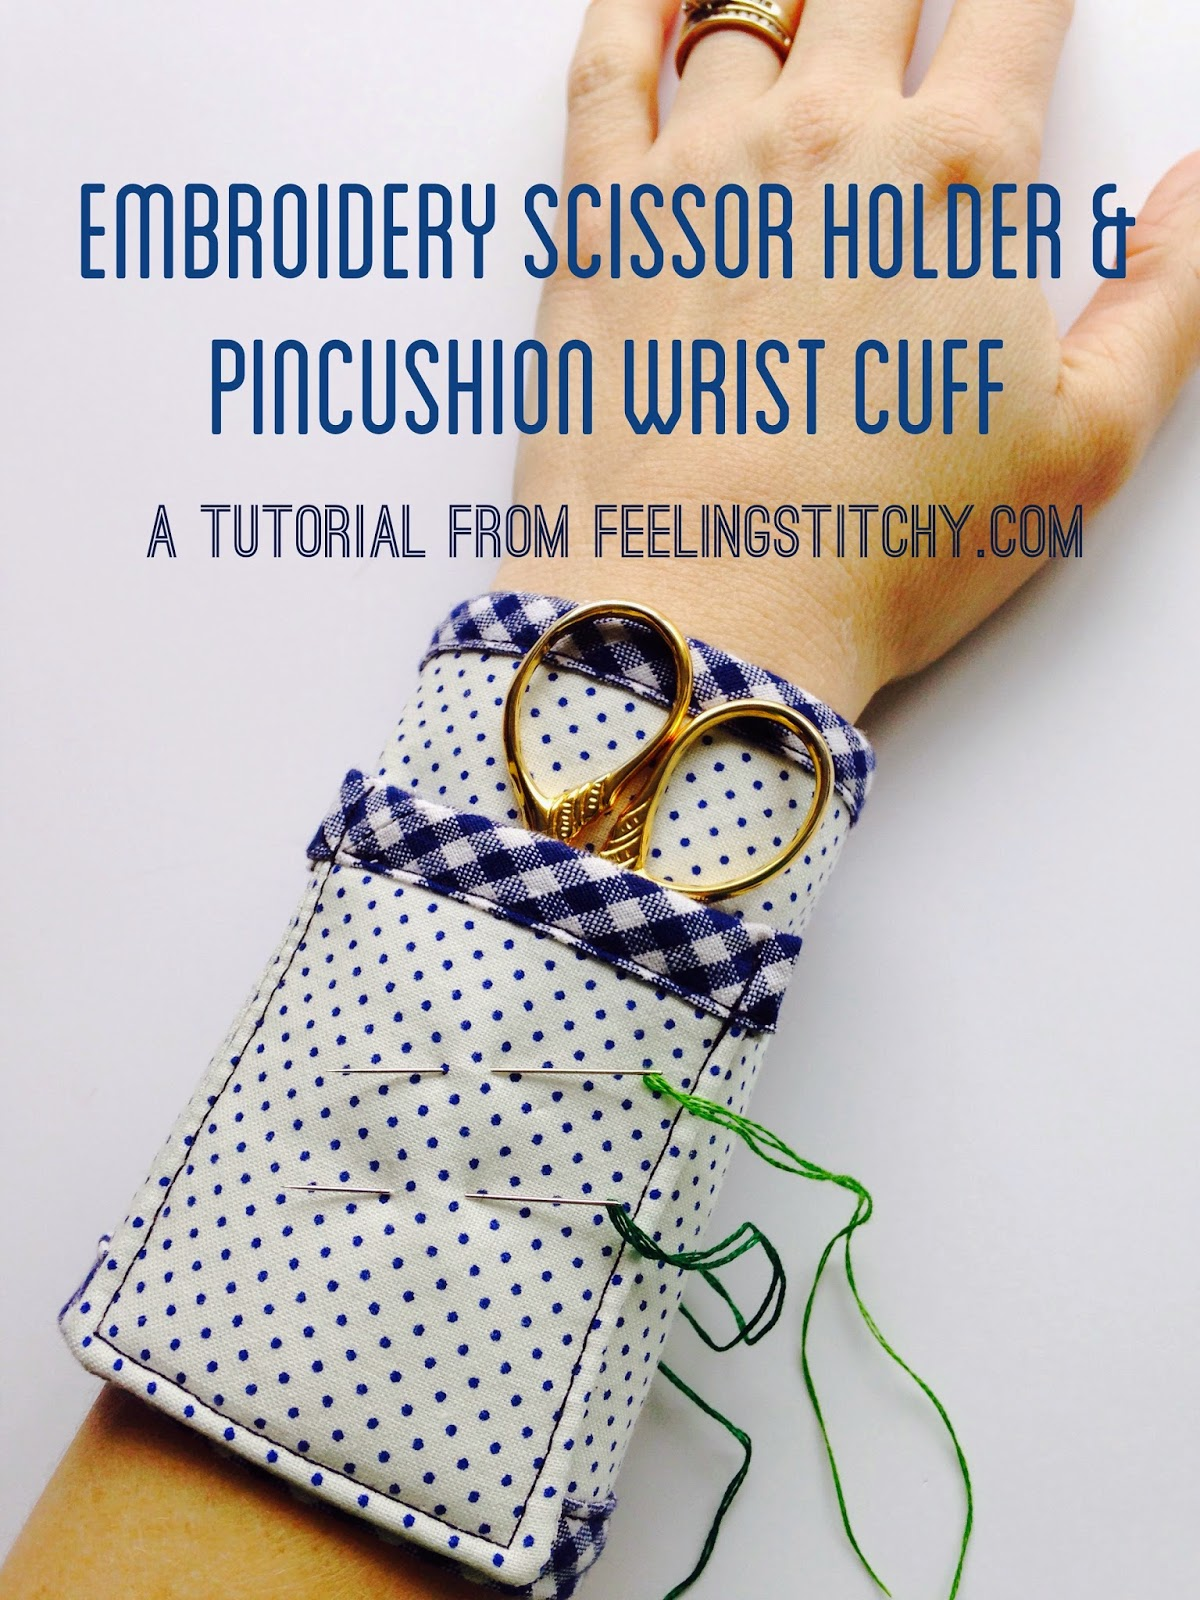 Thimblenest thursdays tutorial for an embroidery scissor